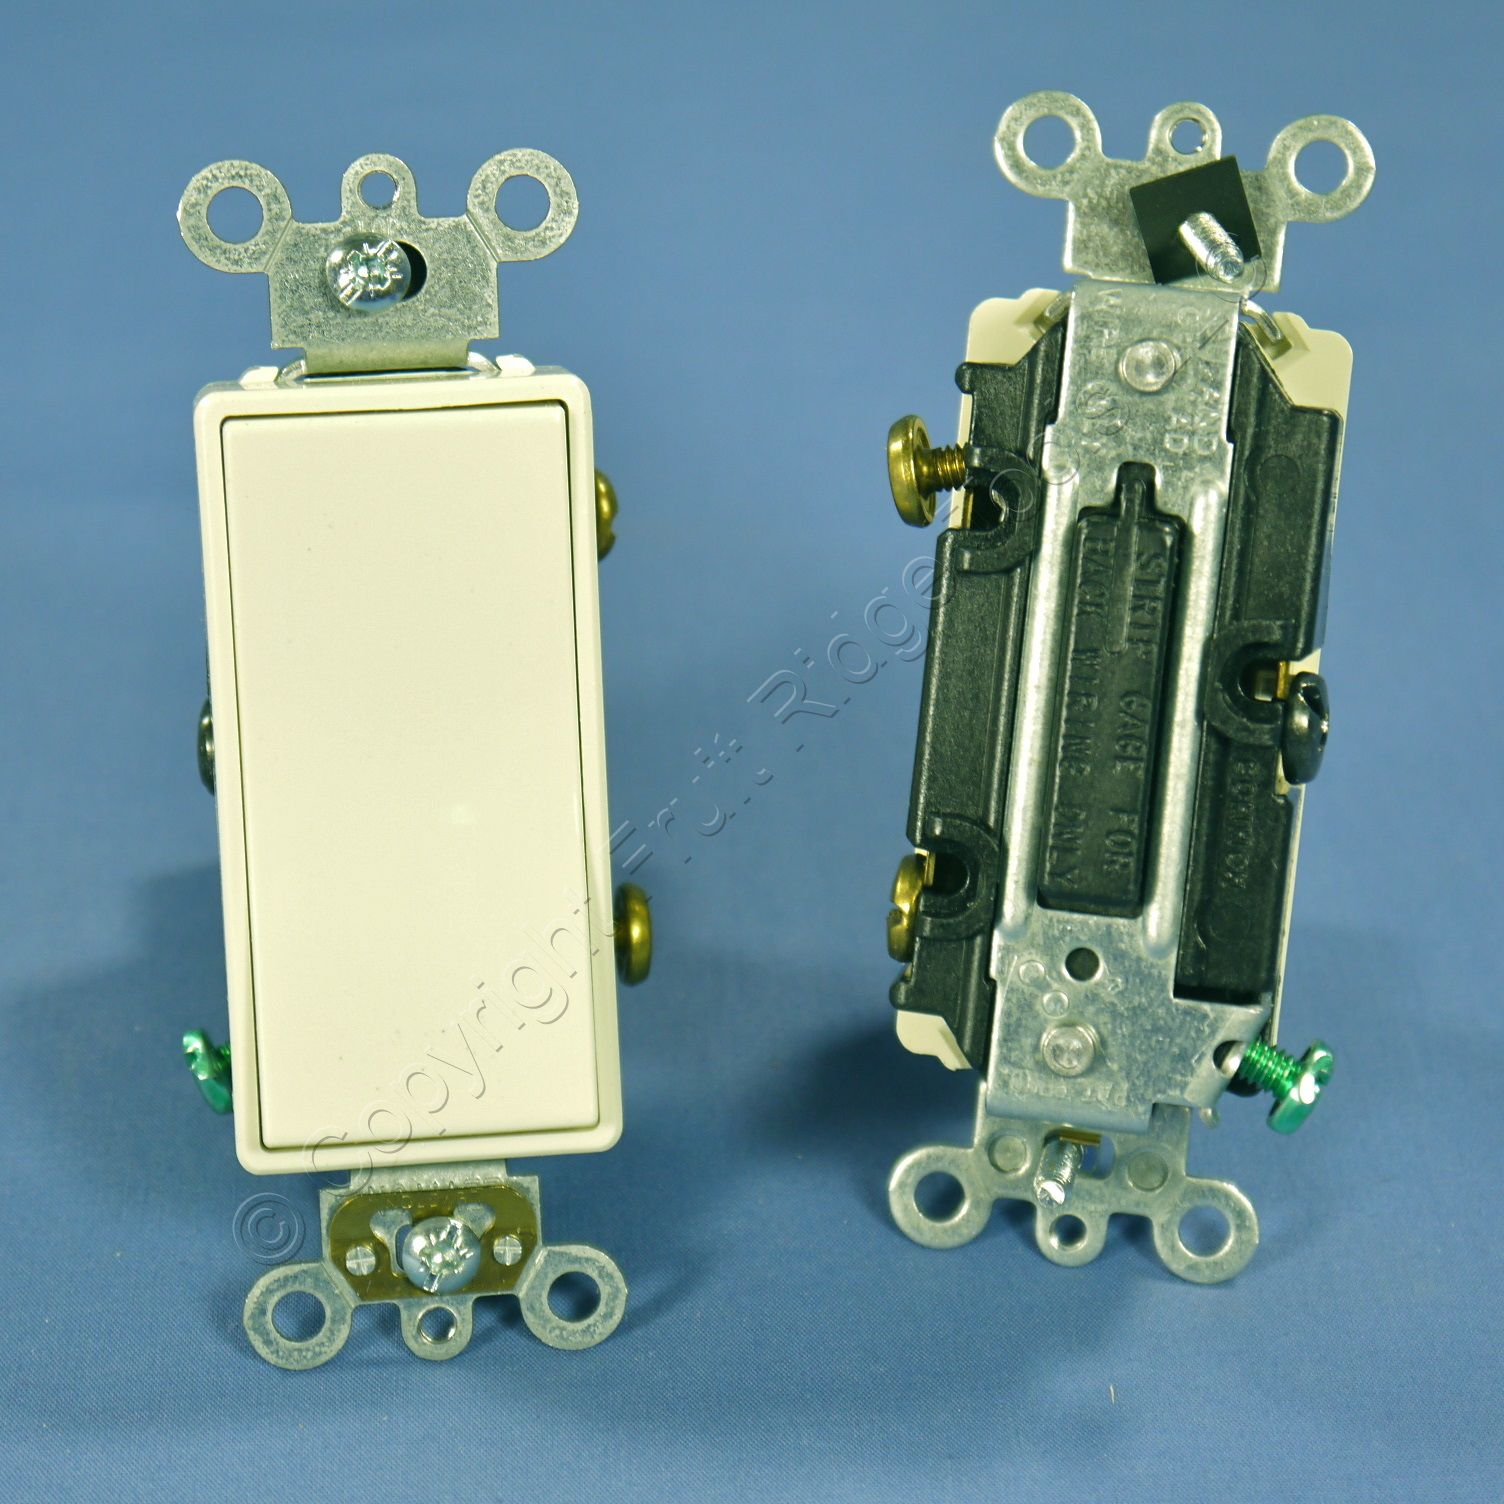 10 Leviton Decora Almond Rocker Wall Light Switches 15a Auto Triple Switch Triplex Commercial 3